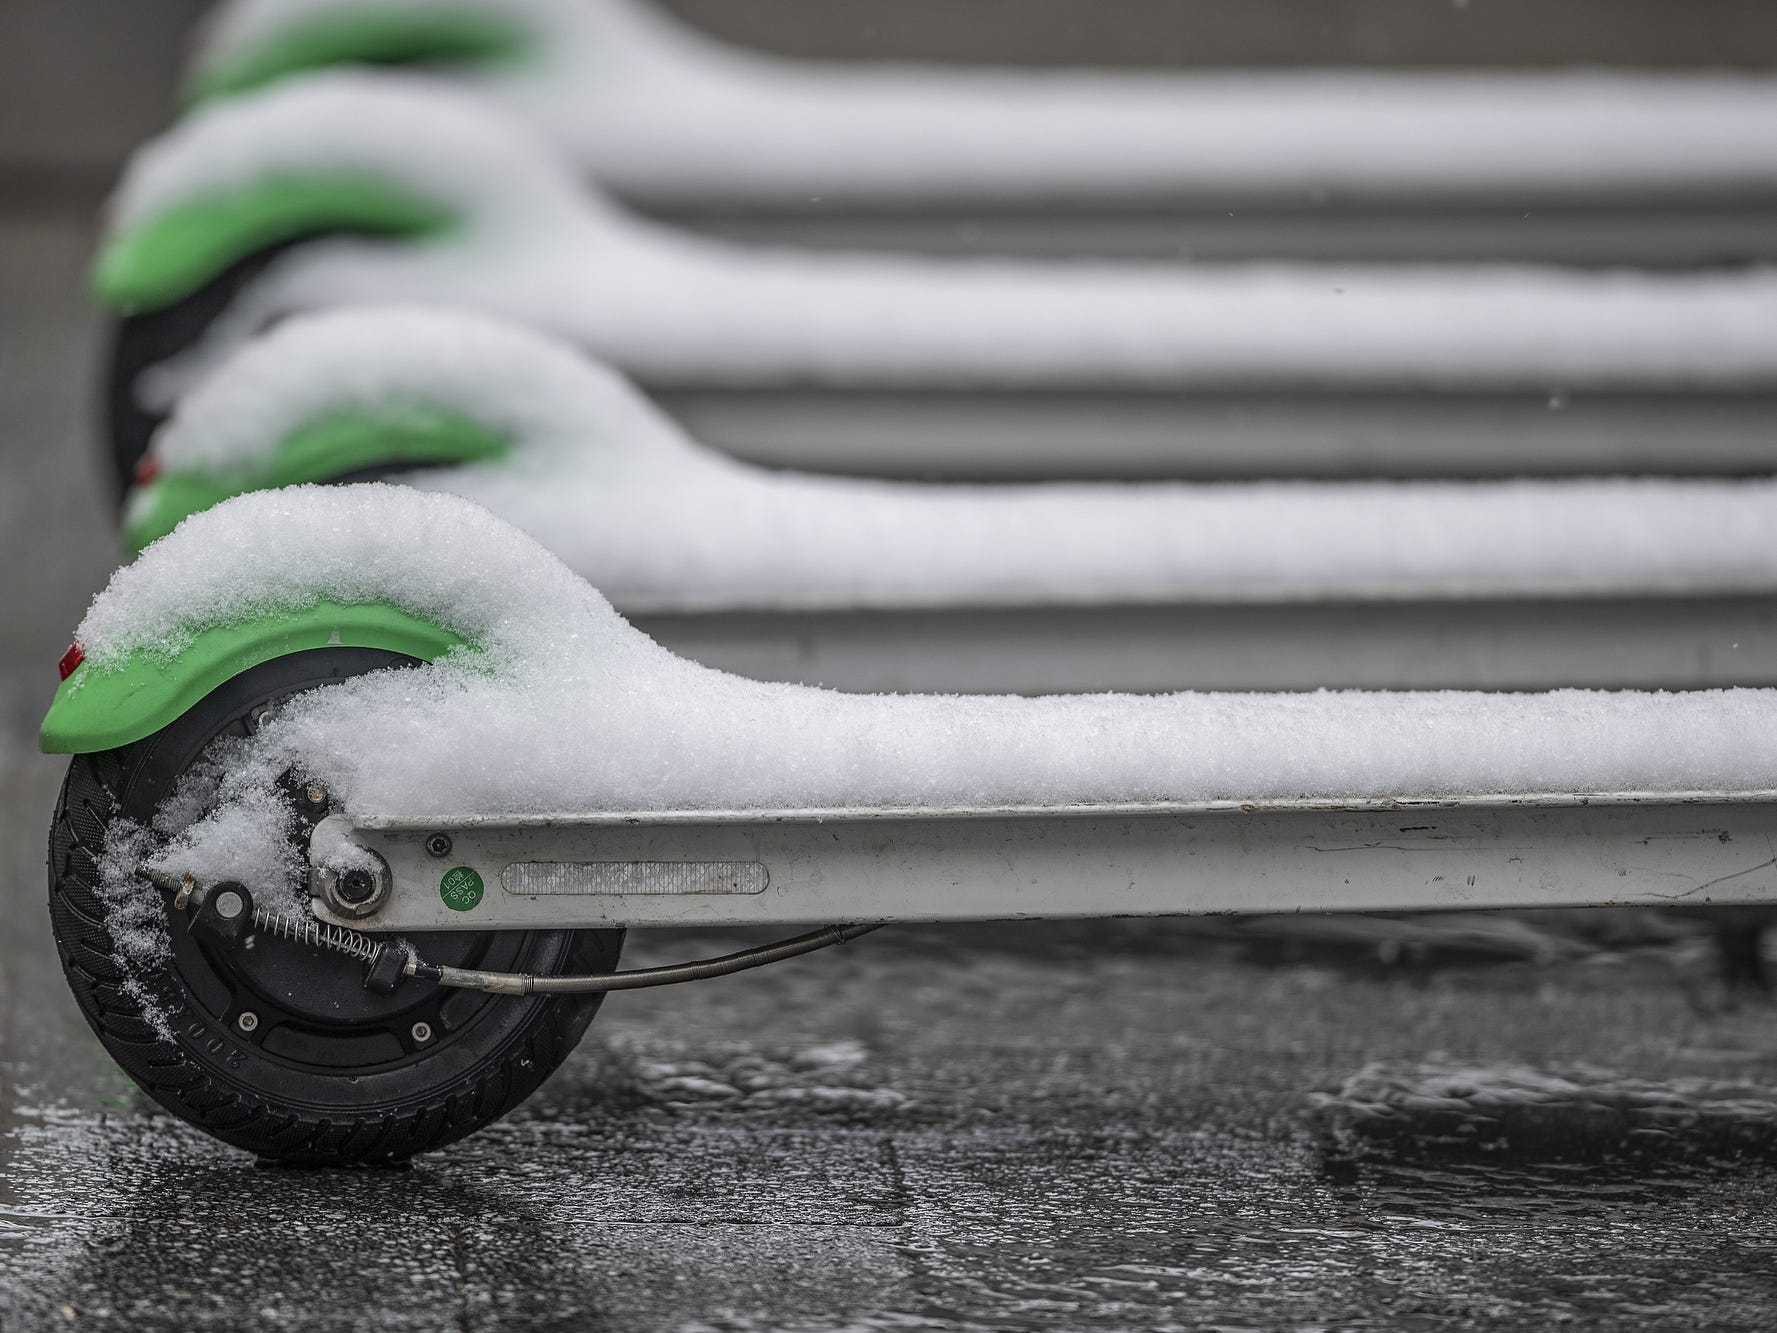 Snowfall builds up on scooters for rent during a bout of Sunday afternoon snow in Indianapolis on March 3, 2019.